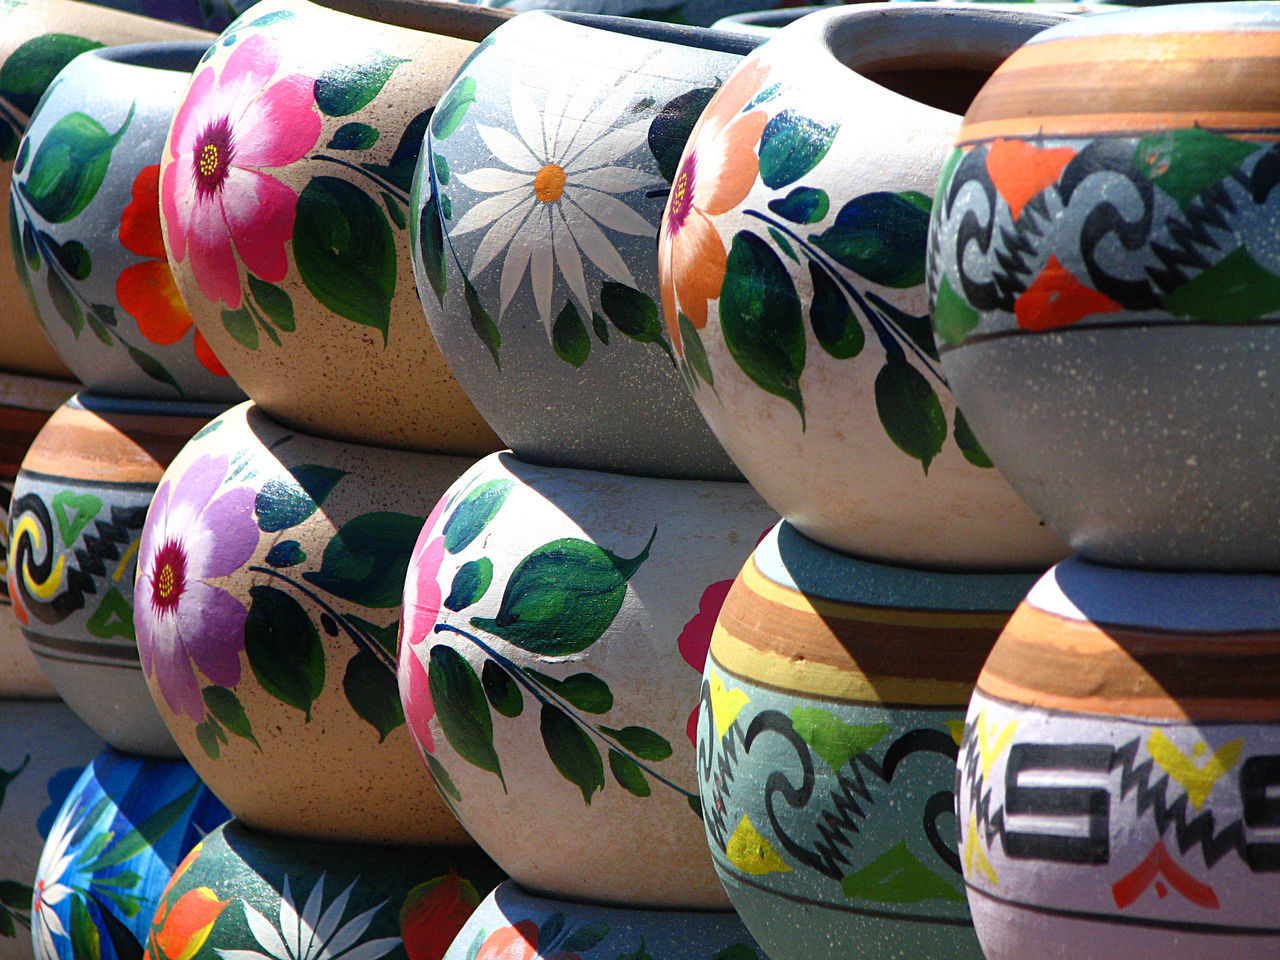 Lovely hand-painted pots Art And Craft Choice Close-up Day For Sale In A Row Large Group Of Objects Multi Colored No People Outdoors Painted Bowls Variation Let's Go. Together. Website Design Multi Coloured Mexican Art